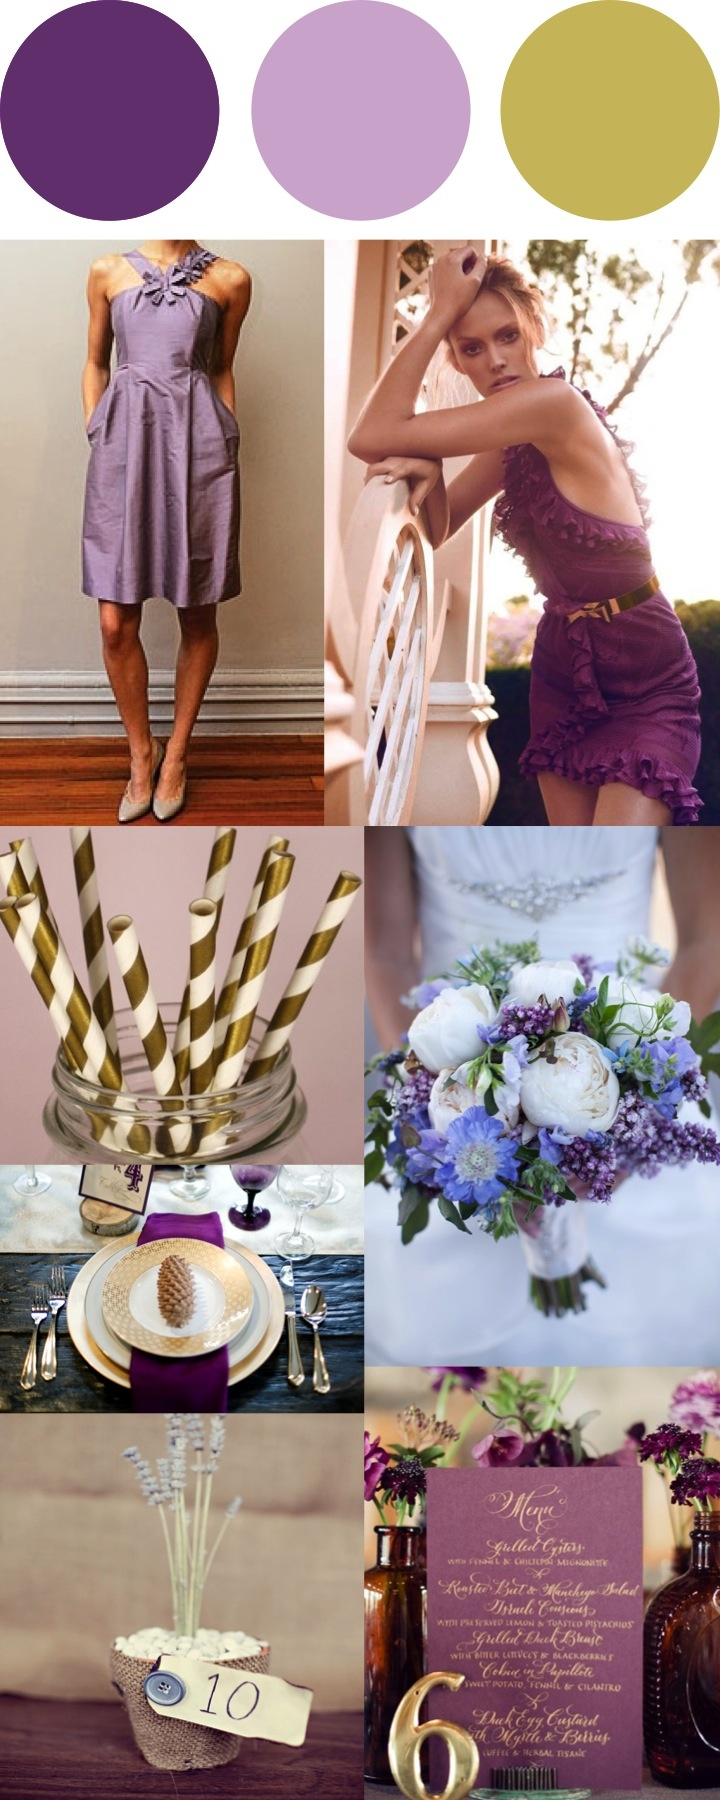 purple, gold, and lavender wedding inspiration board. a true gold instead  of